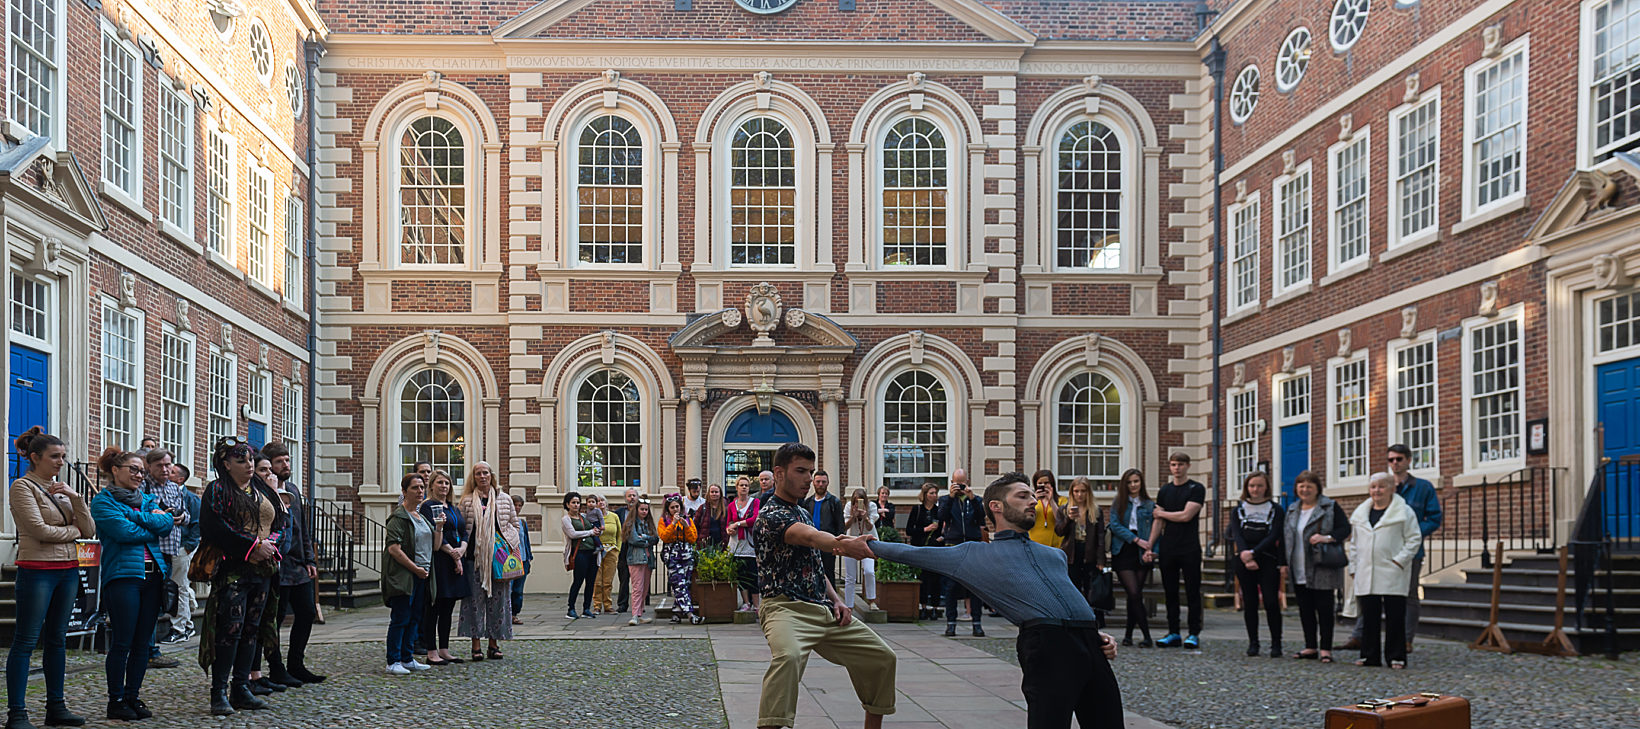 Two dancers perform in Bluecoat's courtyard with a packed audience behind them. In the background you can see the Bluecoat building.